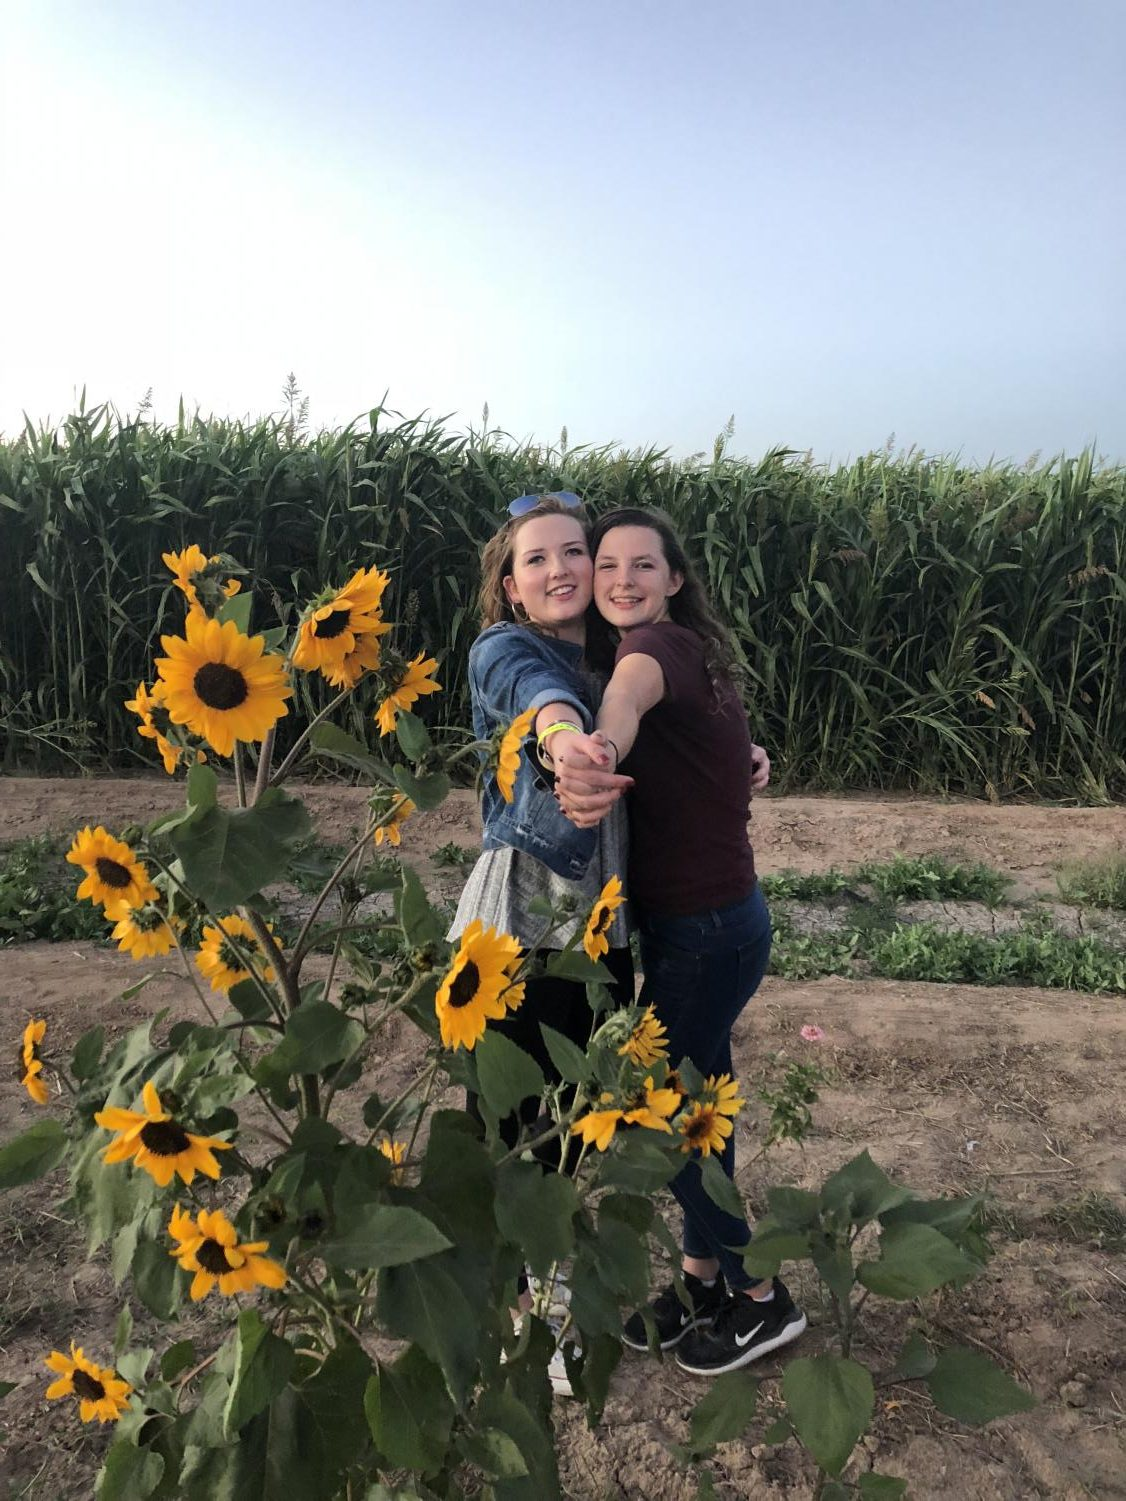 Juniors Sarah Roderick and Iliana Flores-Dumond take the time to enjoy the magnificent scenery at the La Union Corn Maze.